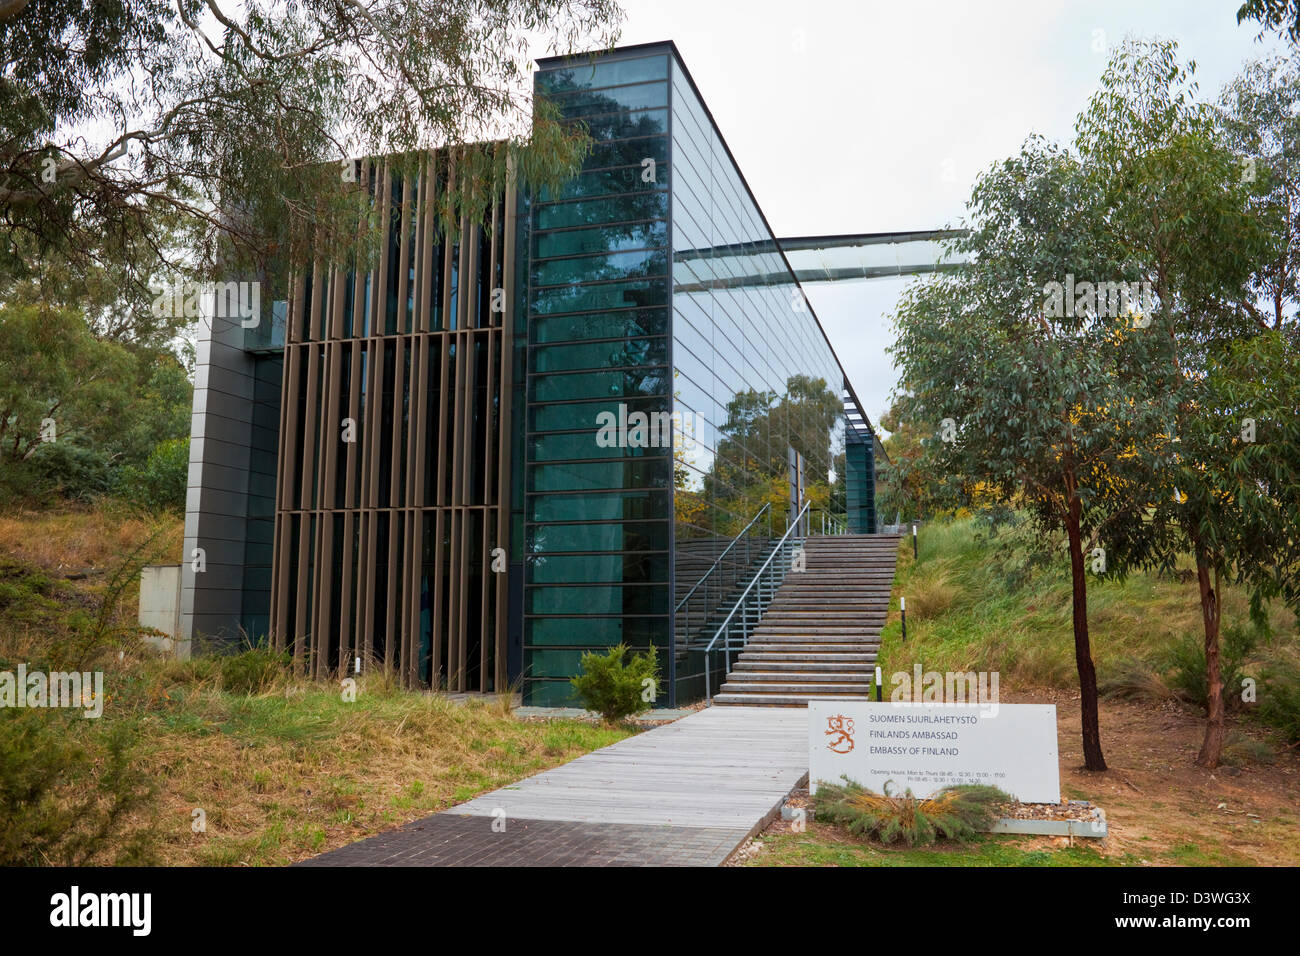 The Embassy of Finland. Yarralumla, Canberra, Australian Capital Territory (ACT), Australia - Stock Image